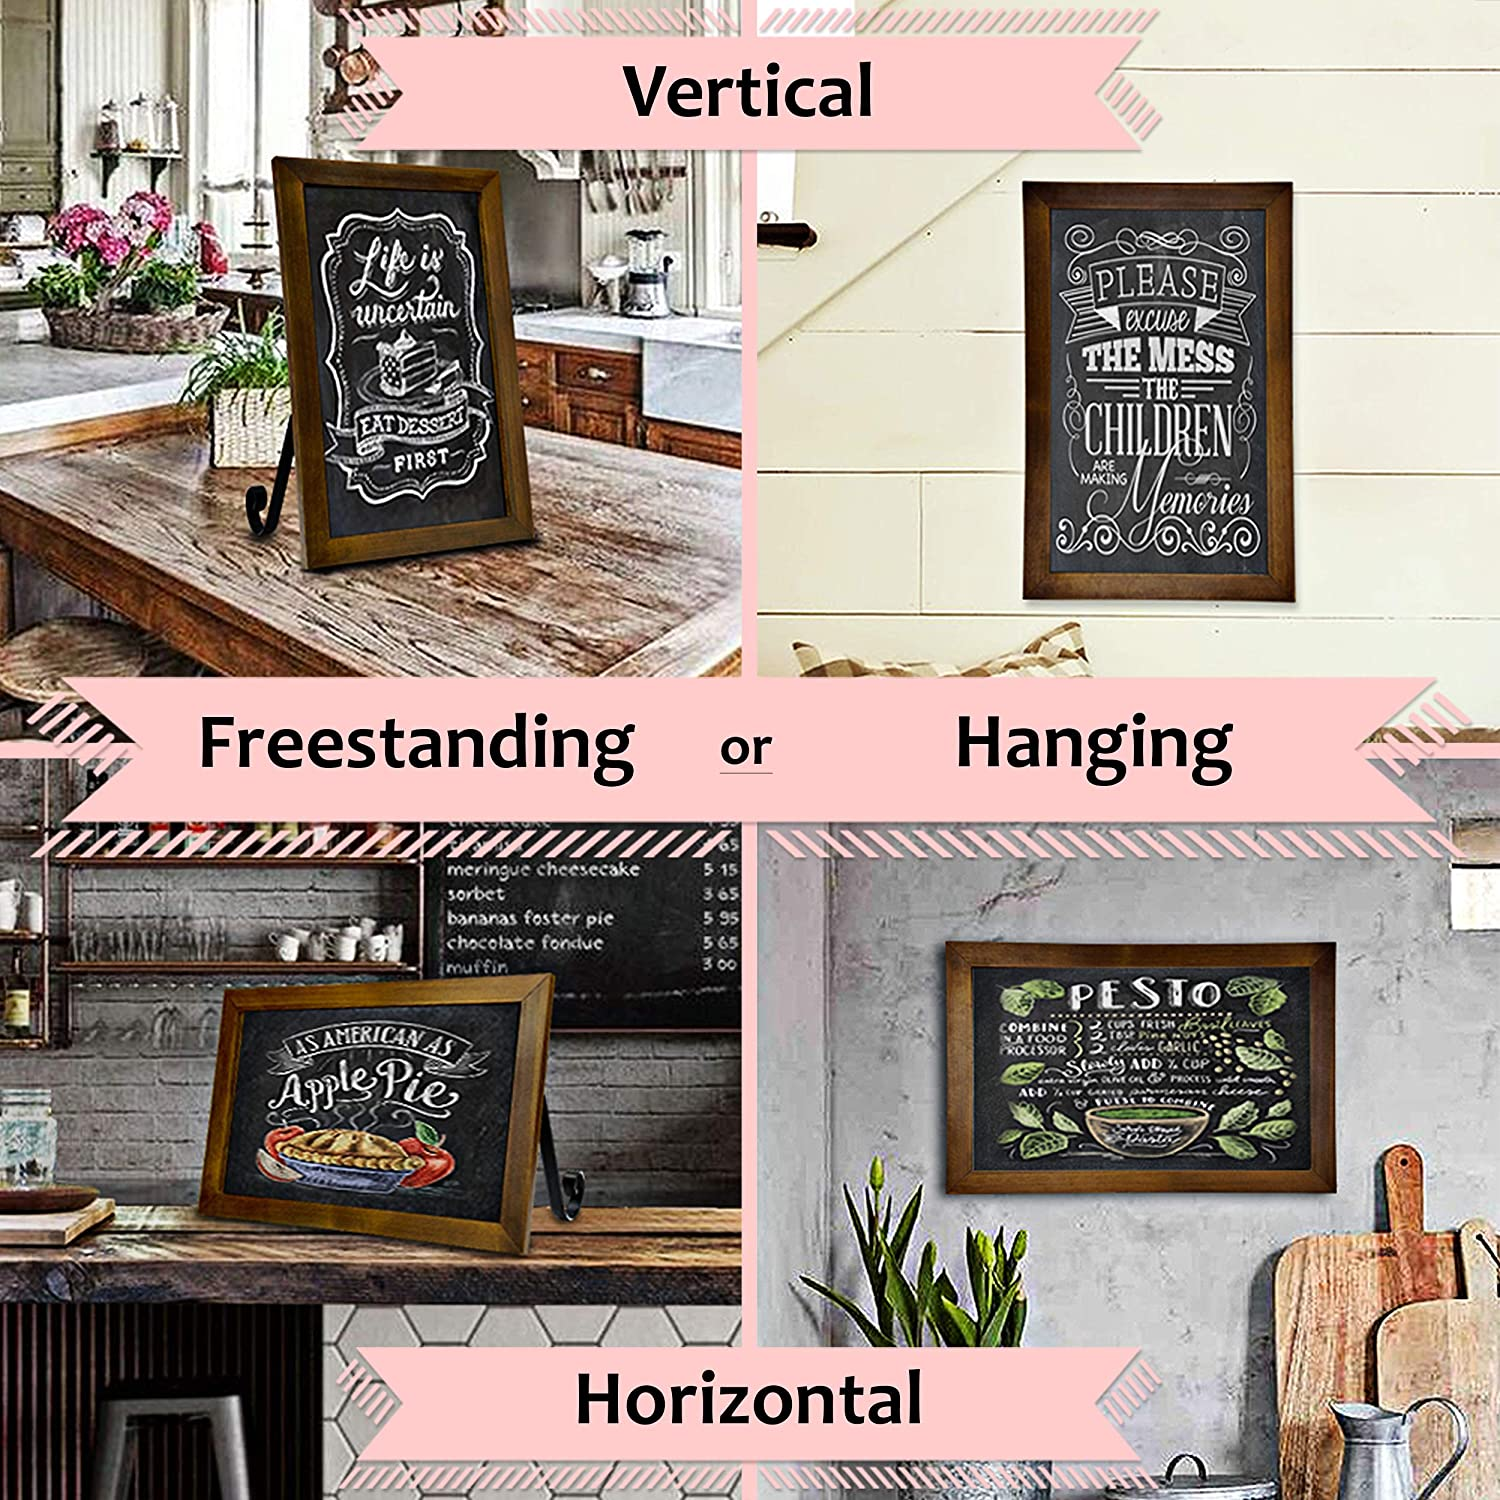 TenXVI Designs 11x13 Hanging or Freestanding Vertical or Horizontal Magnetic Rustic Bulletin Board or Chalkboard Sign for Tabletops Farmhouses Restaurants and Home Decor /Ð Black Weddings